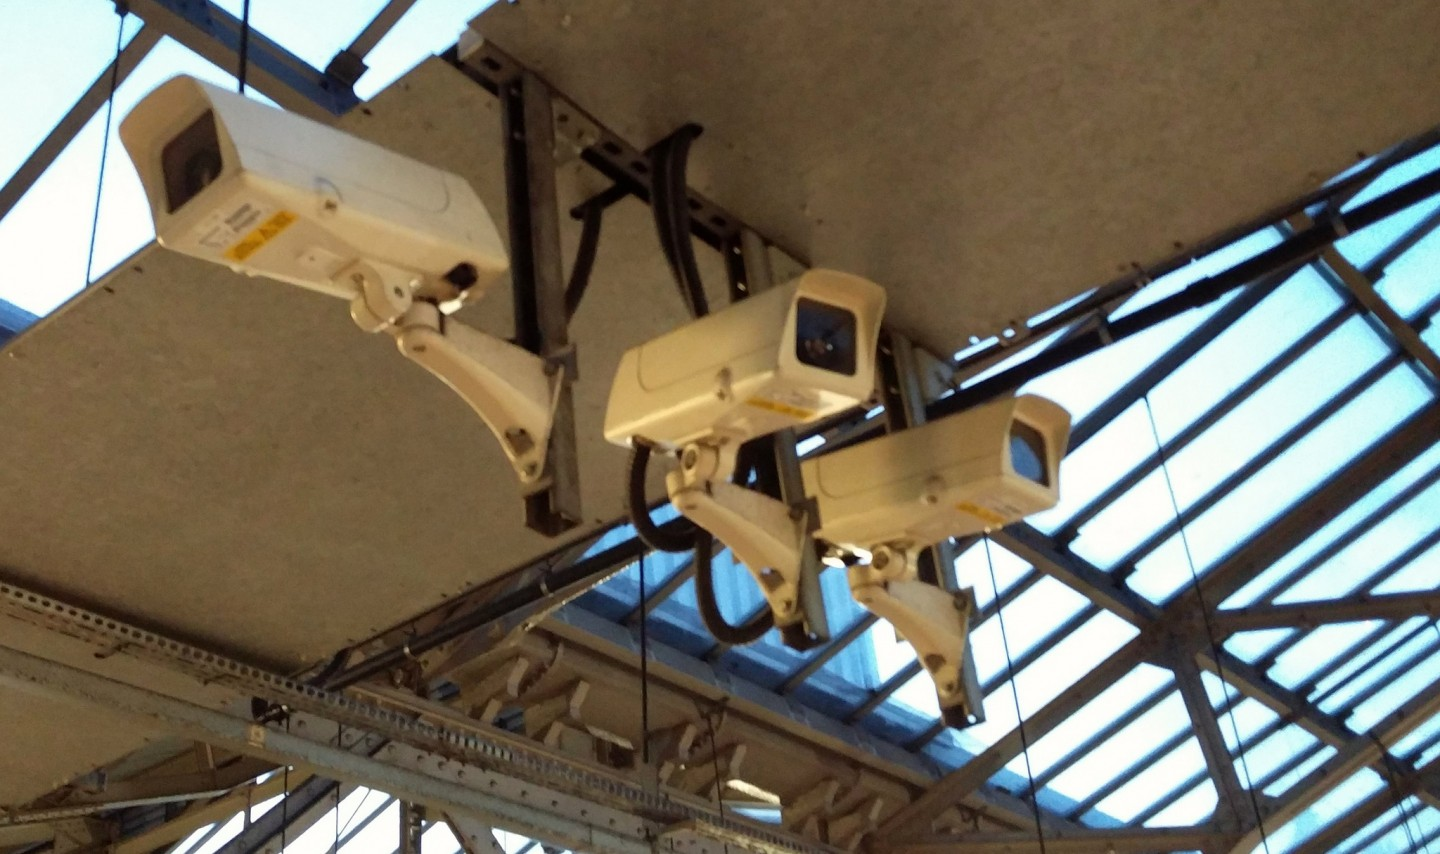 Council breaking CCTV privacy rules, claims former worker 9